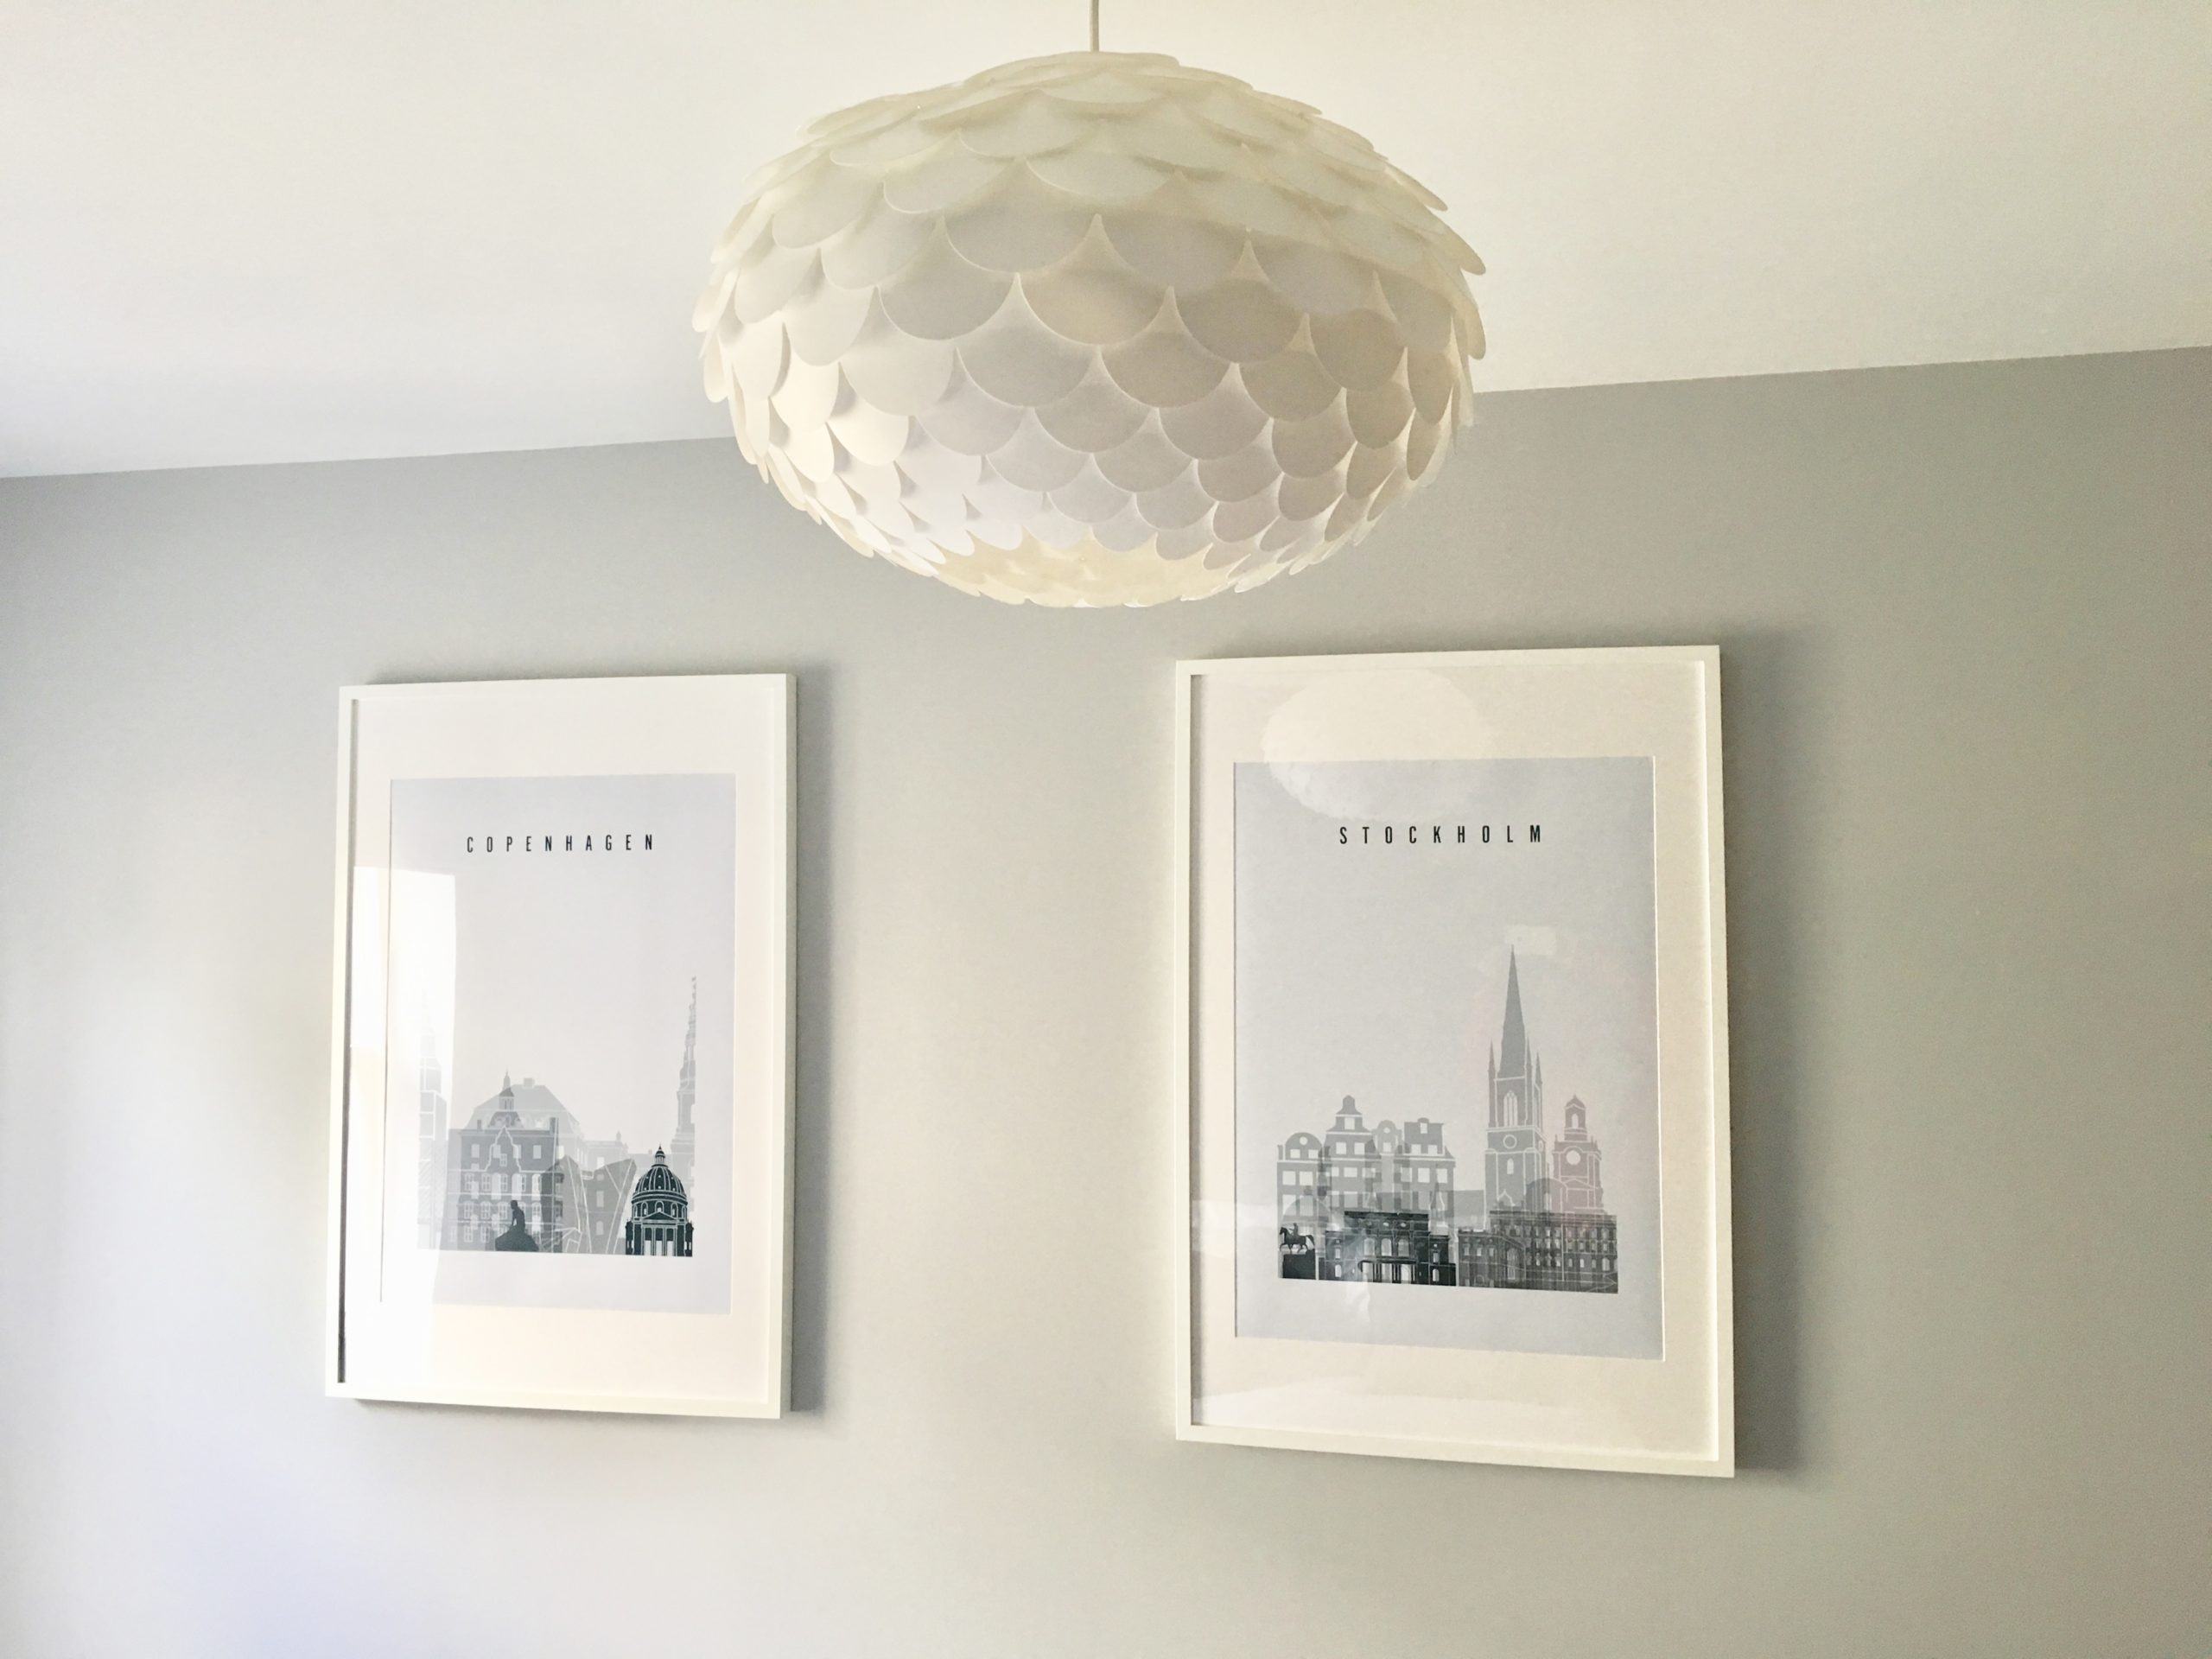 Stockholm and Copenhagen skyline prints from Etsy in show home designed by Amelia Wilson Interiors Ltd